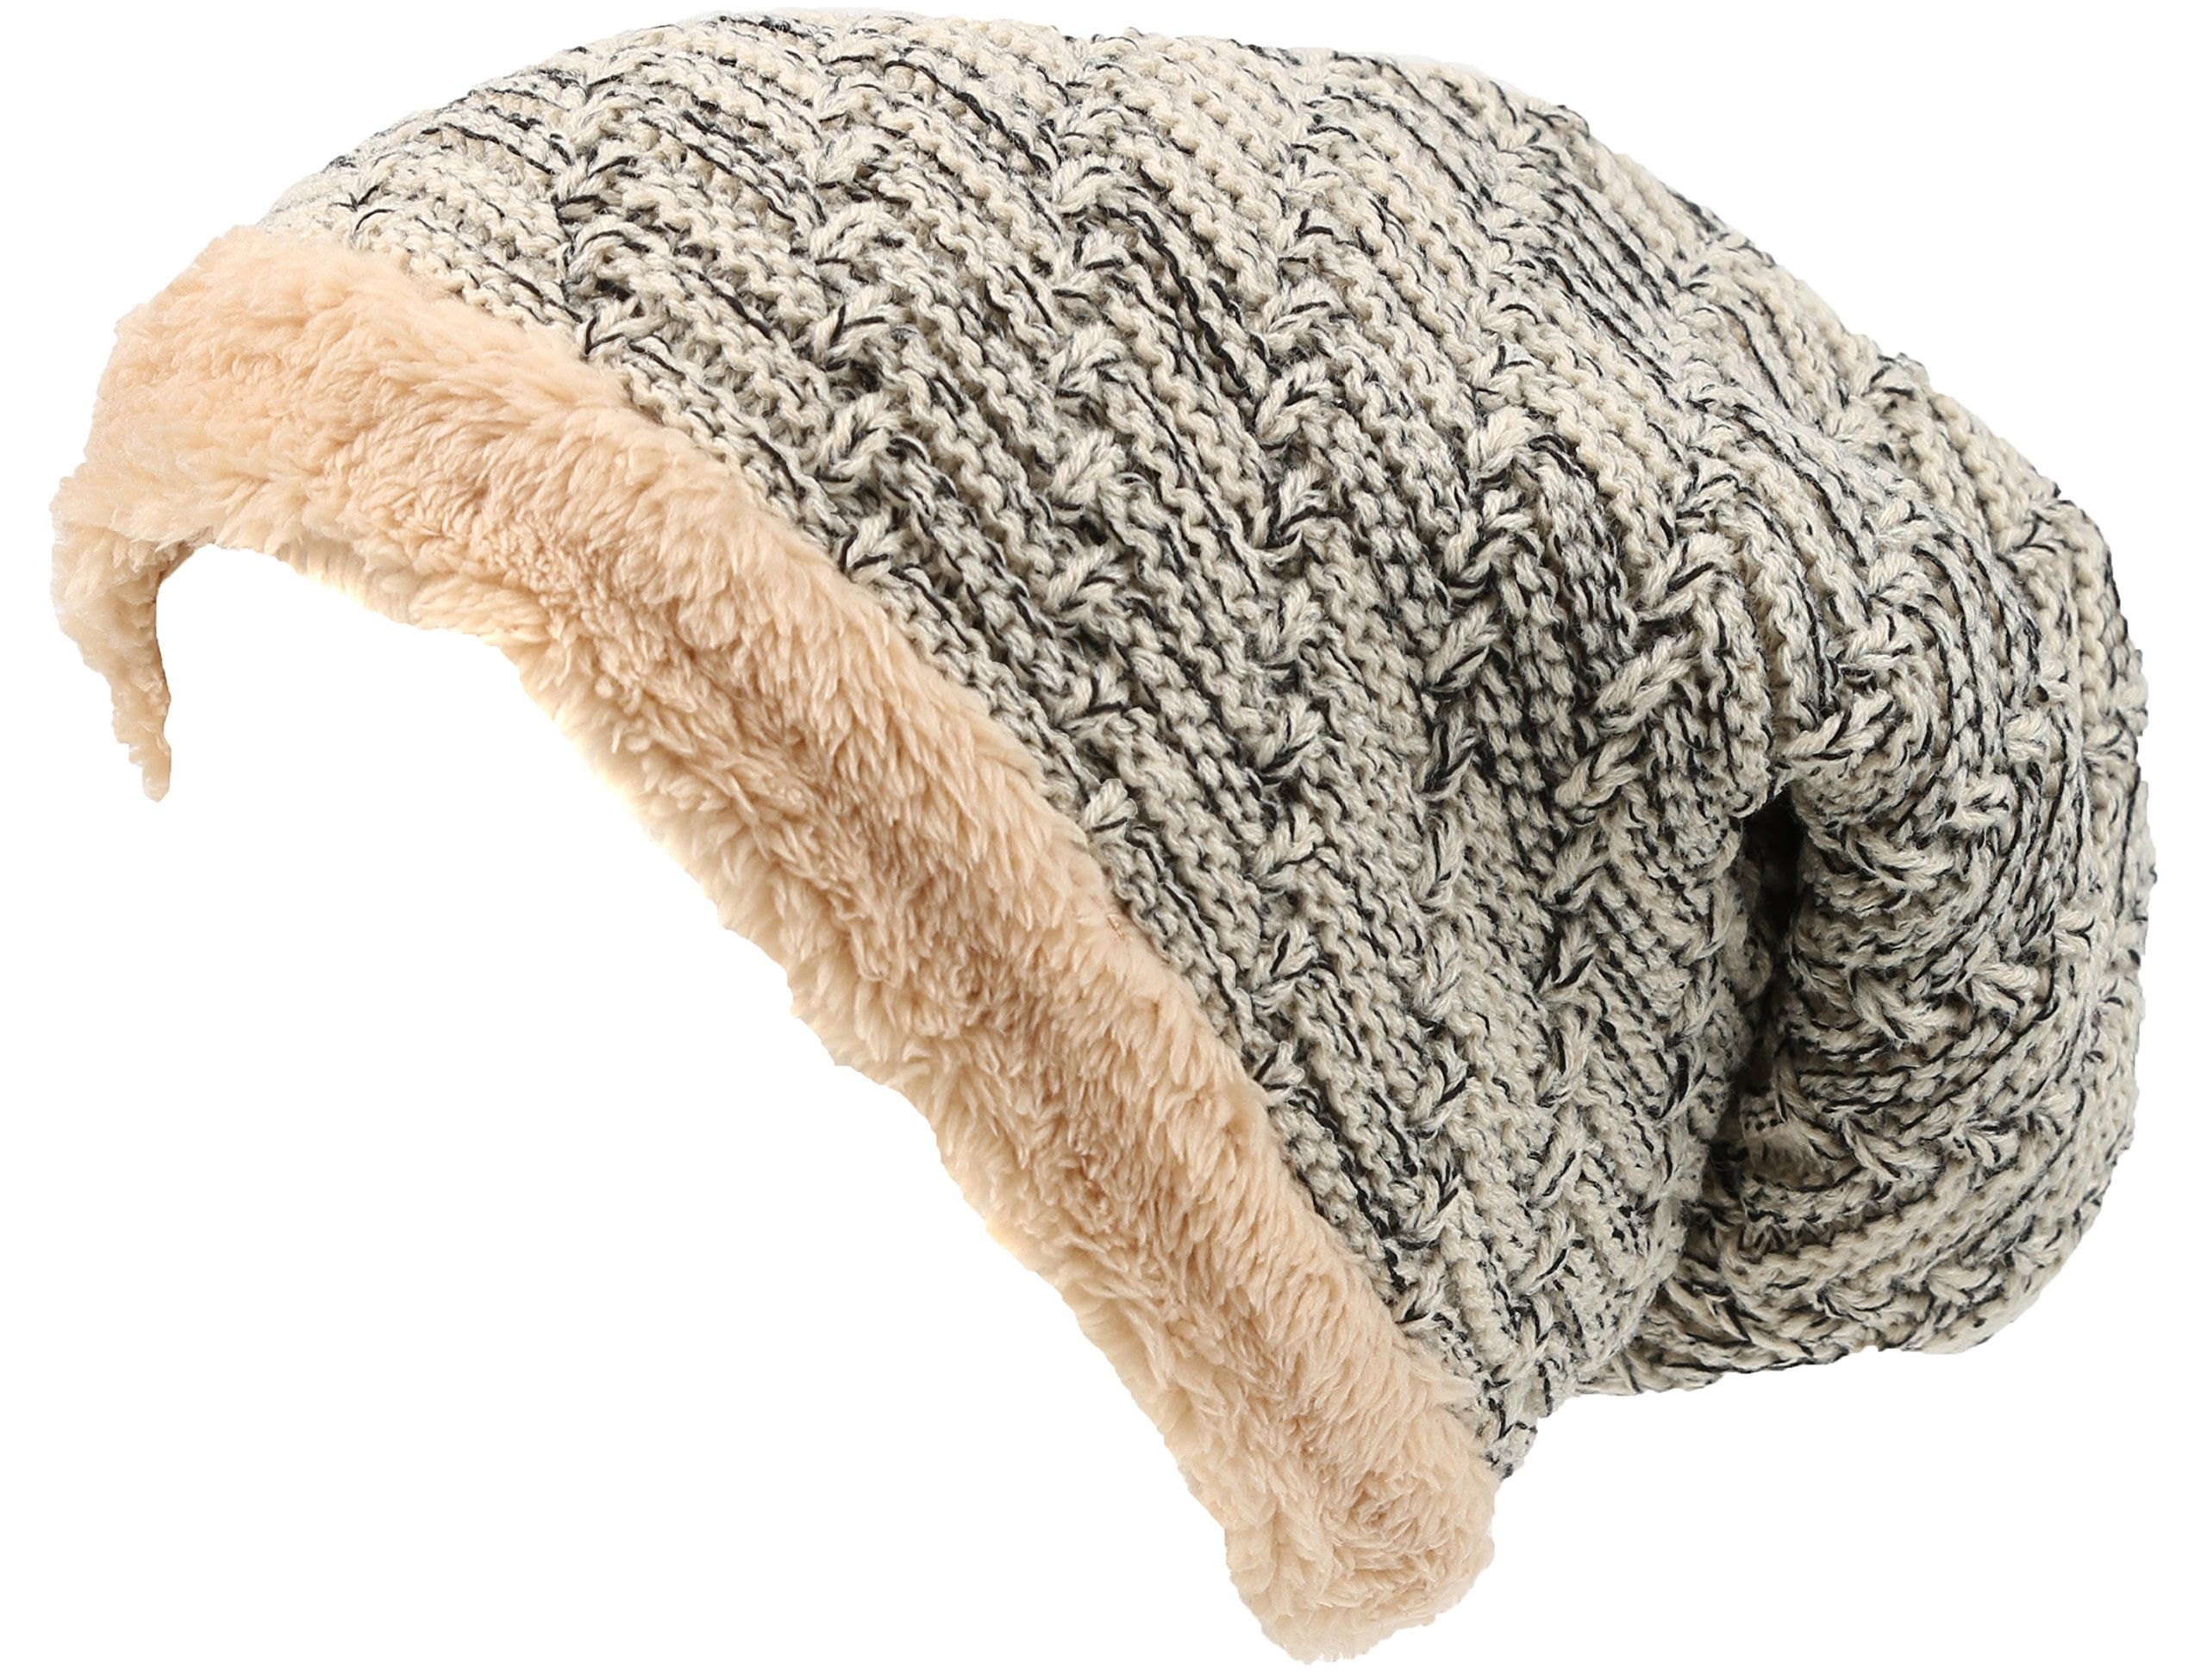 Sakkas 16142 - Veloce Tall Long Heathered Faux Fur Shearling Lined Unisex Beanie Hat - Cream - OS